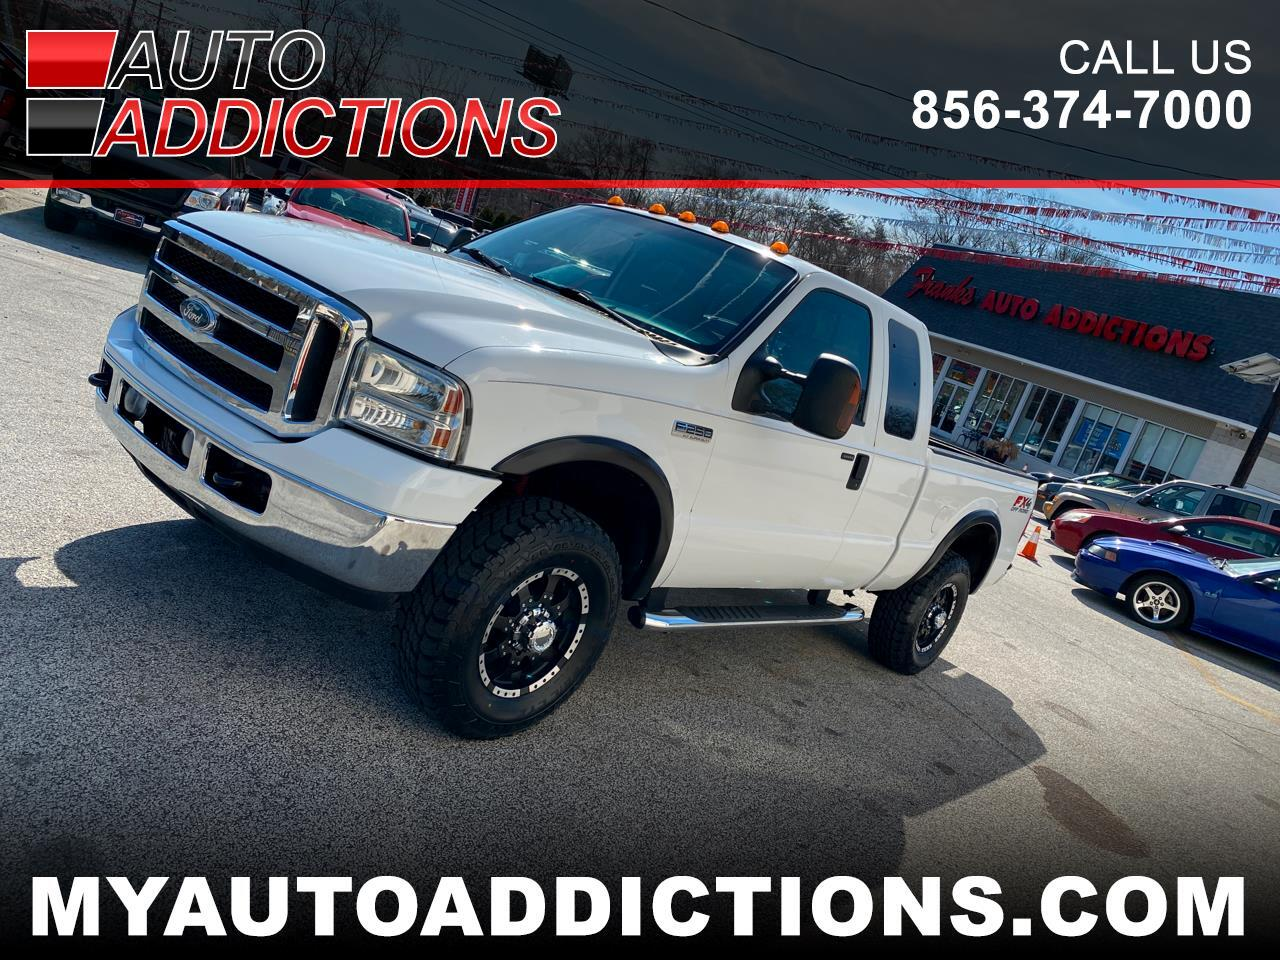 Ford F-250 SD FX4 SuperCab Long Bed 4WD 2006